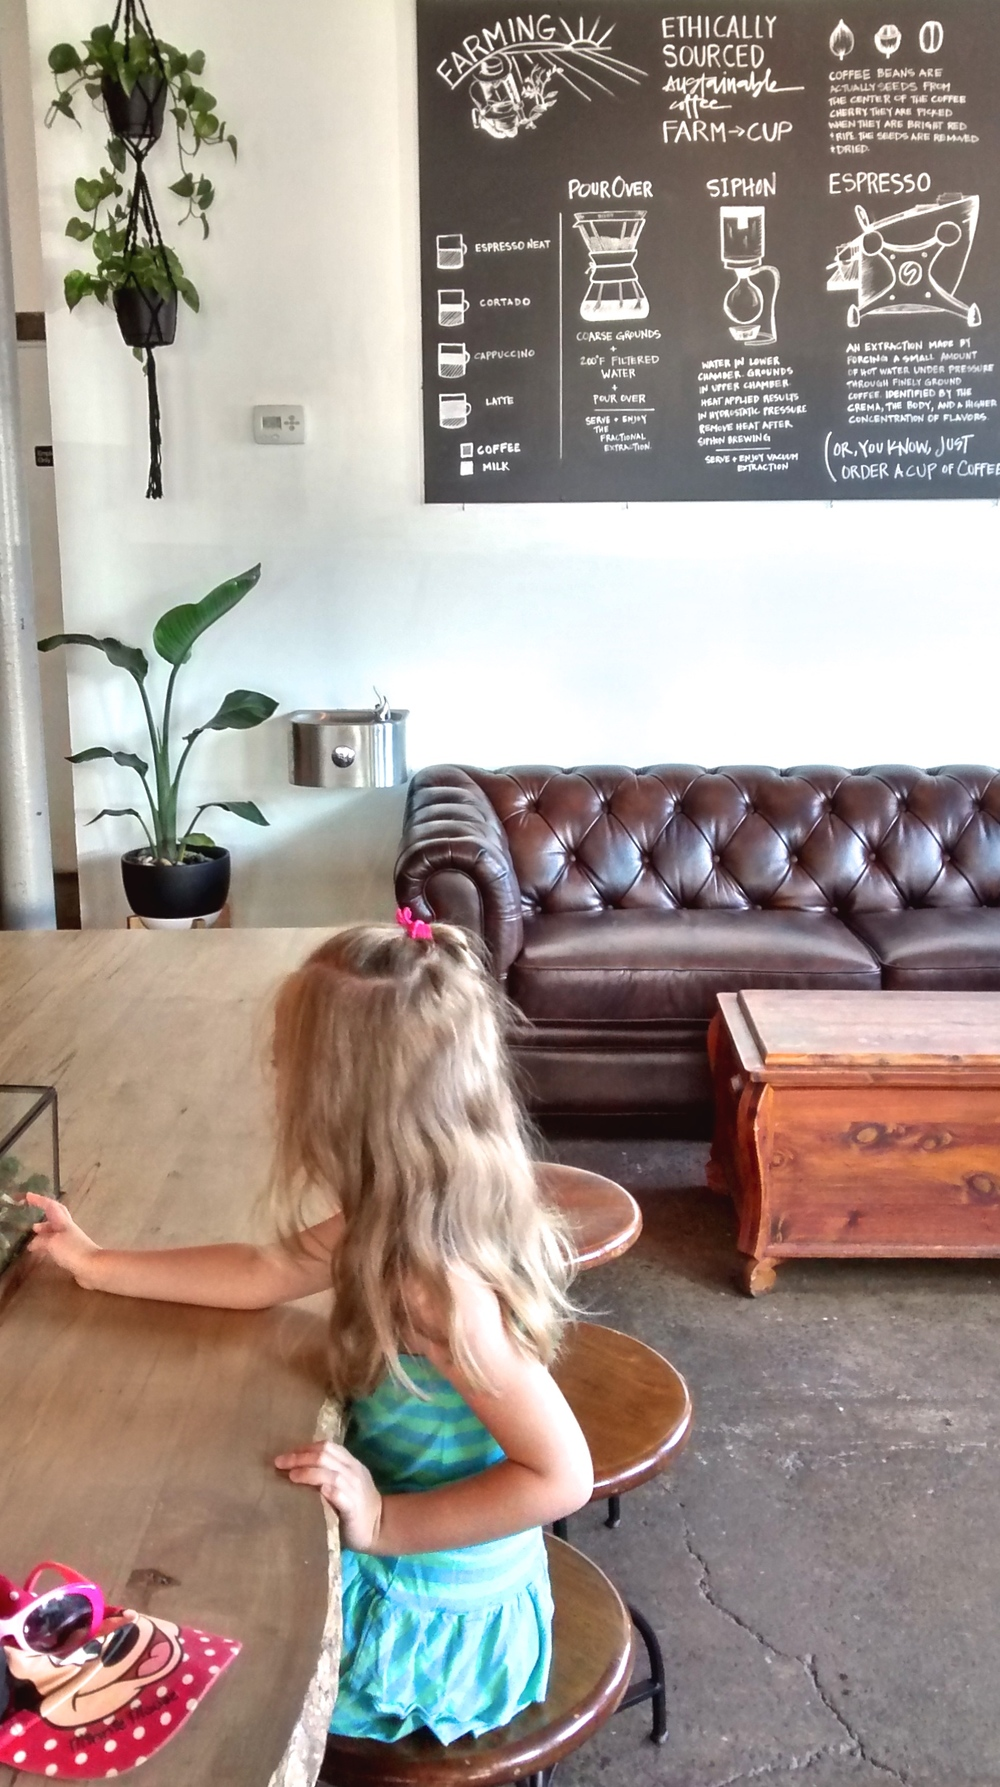 Glen Edith Coffee Roasters had a great atmosphere and the decor was a great mix of natural and modern elements. My tea was GOOD and the girls had no problems making themselves at home on that sofa.